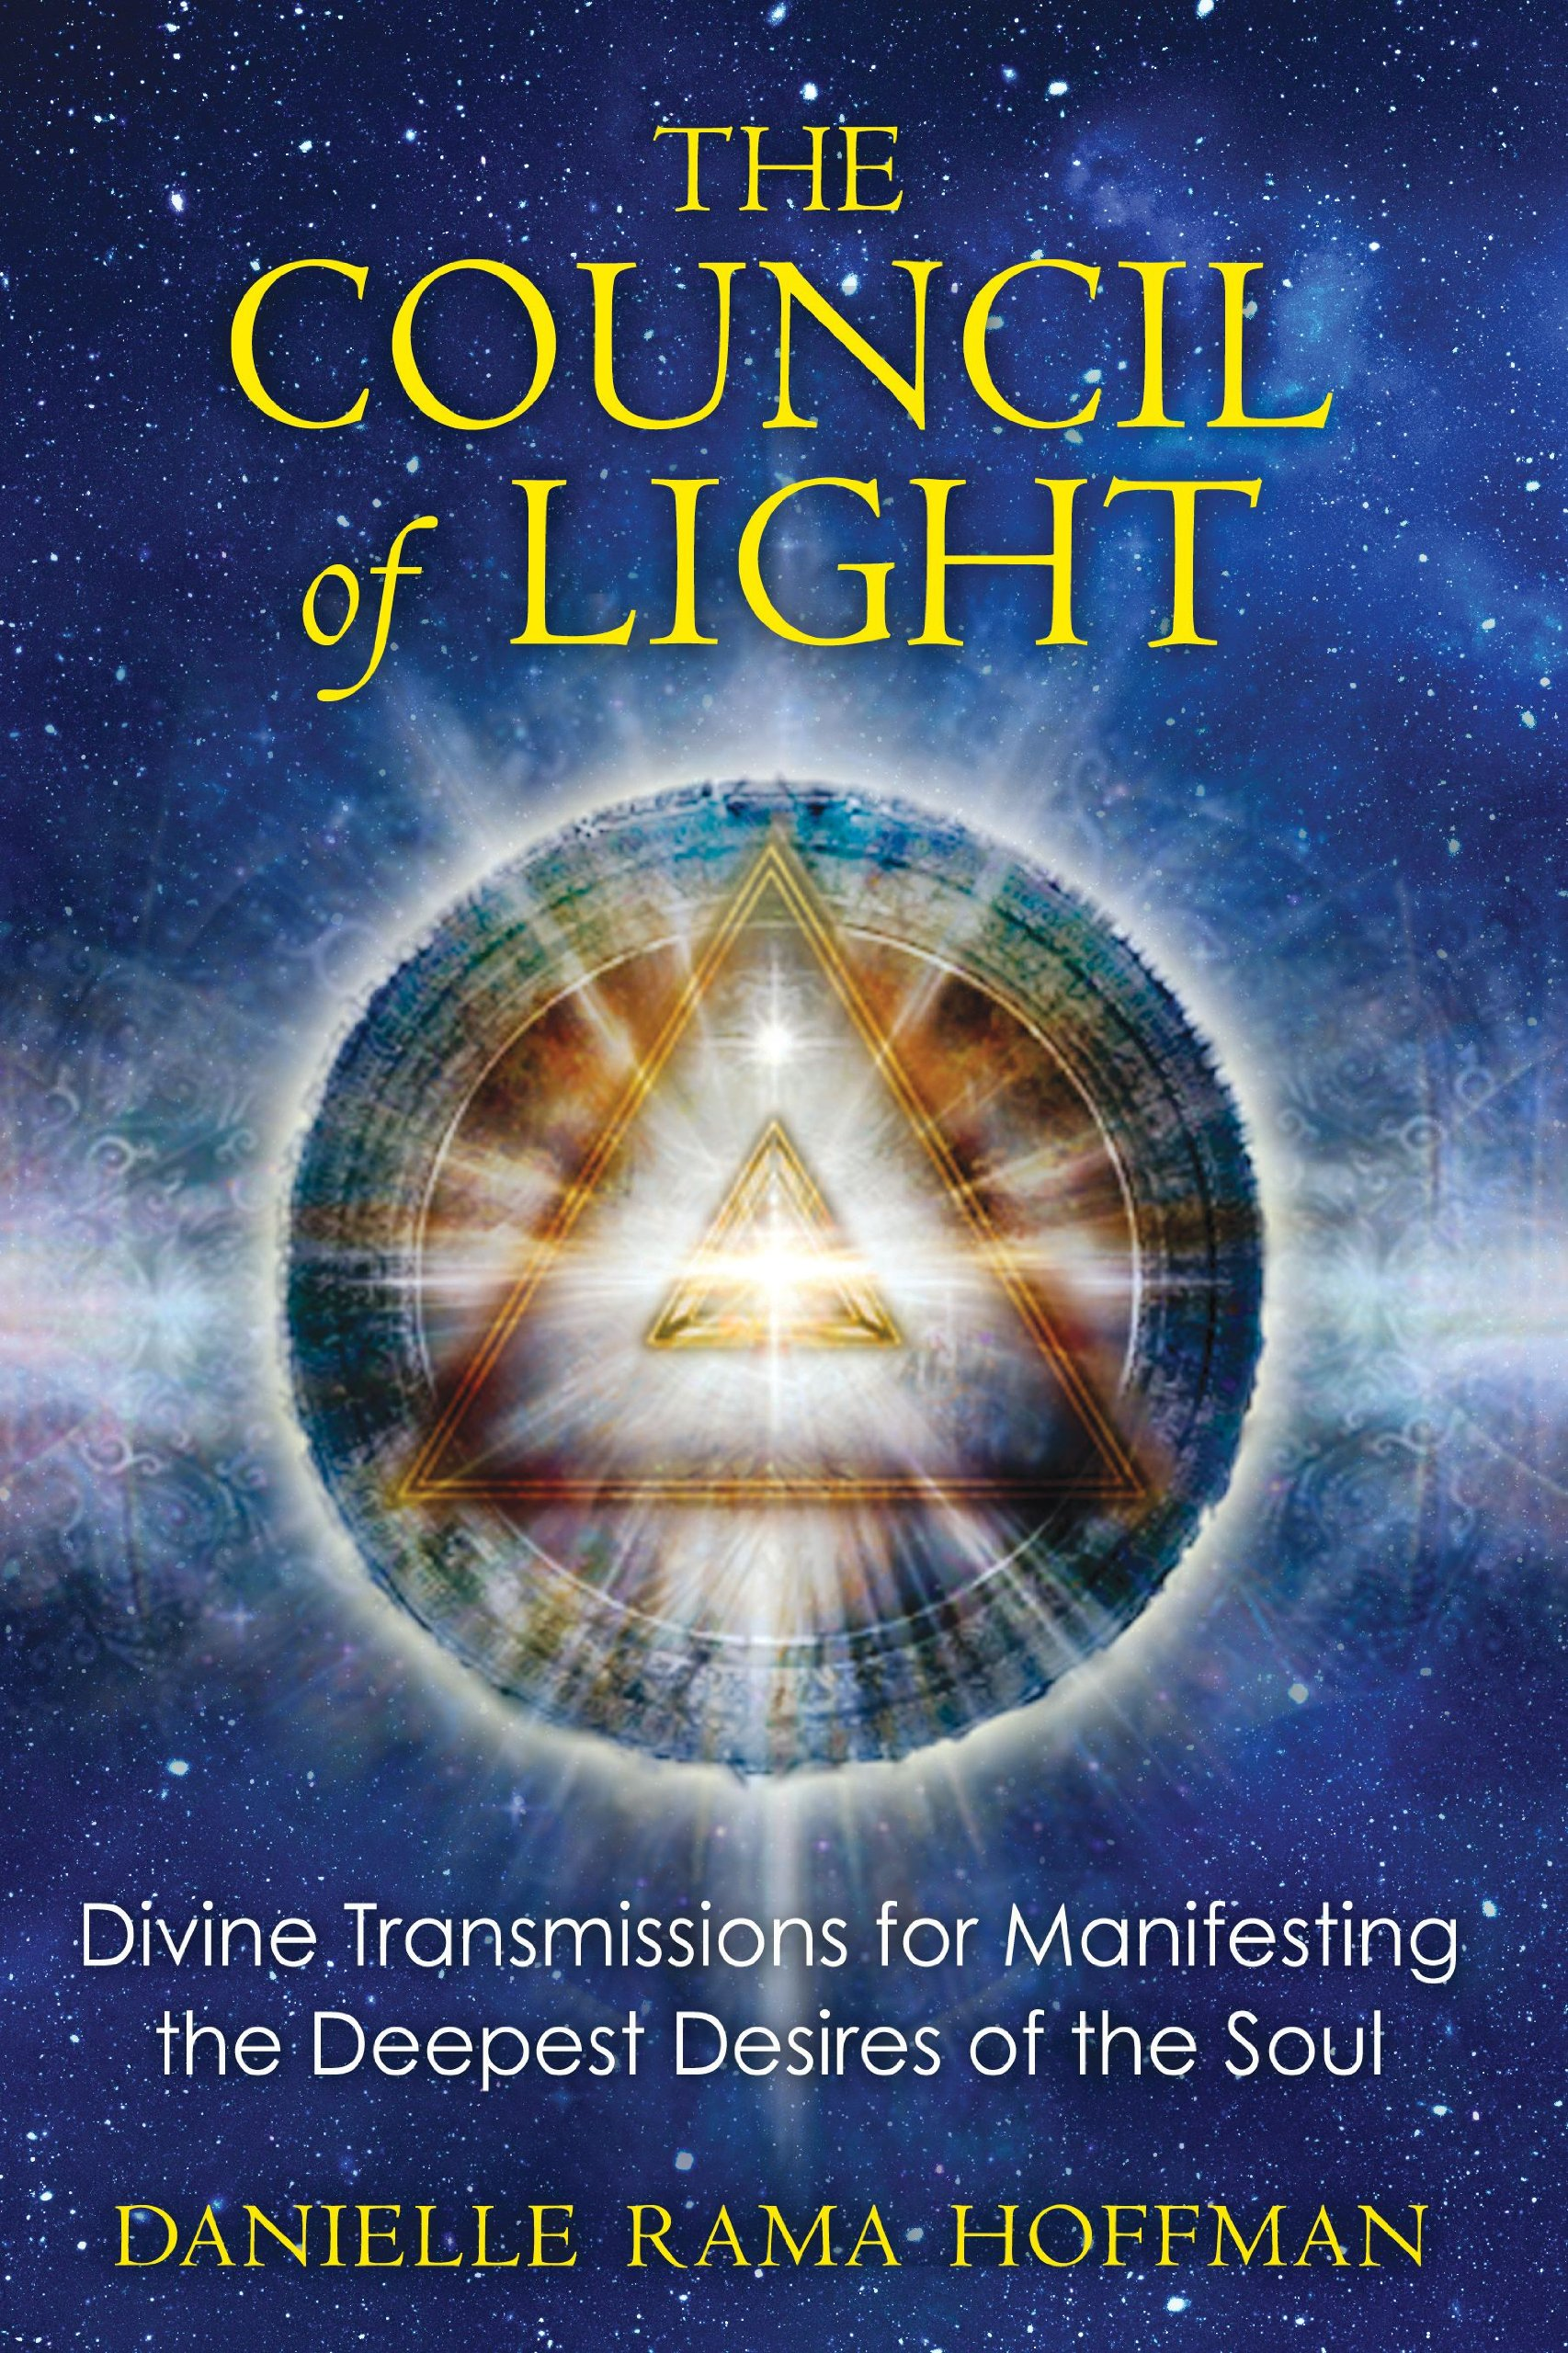 The Council Of Light: Divine Transmissions For Manifesting The Deepest  Desires Of The Soul: Danielle Rama Hoffman: 9781591431633: Amazon: Books